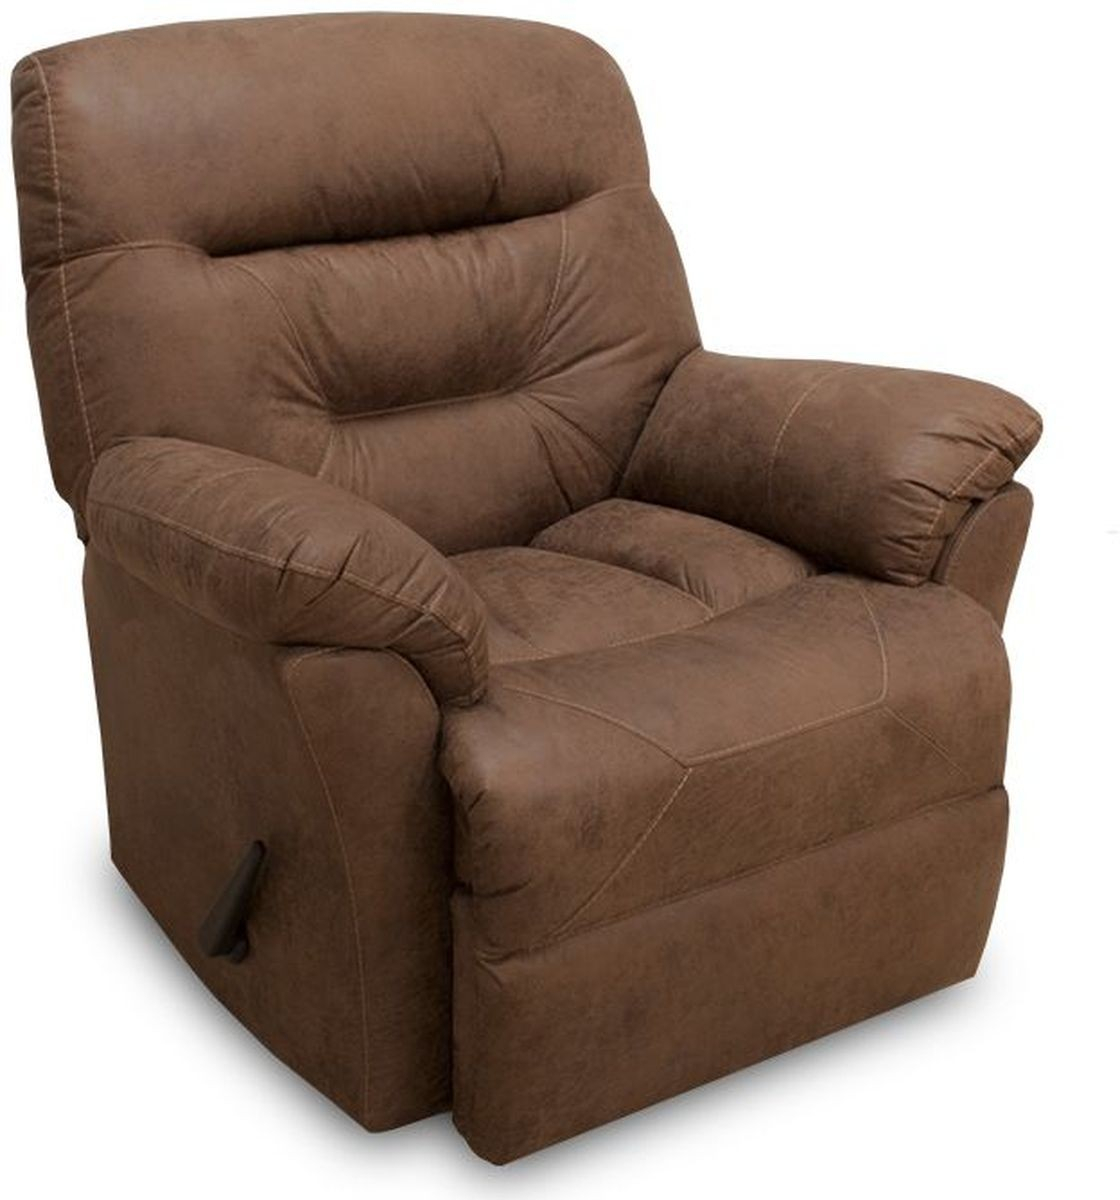 Franklin Prodigy Swivel Rocker Recliner In Bandero Tobacco | Local In Swivel Tobacco Leather Chairs (View 14 of 20)